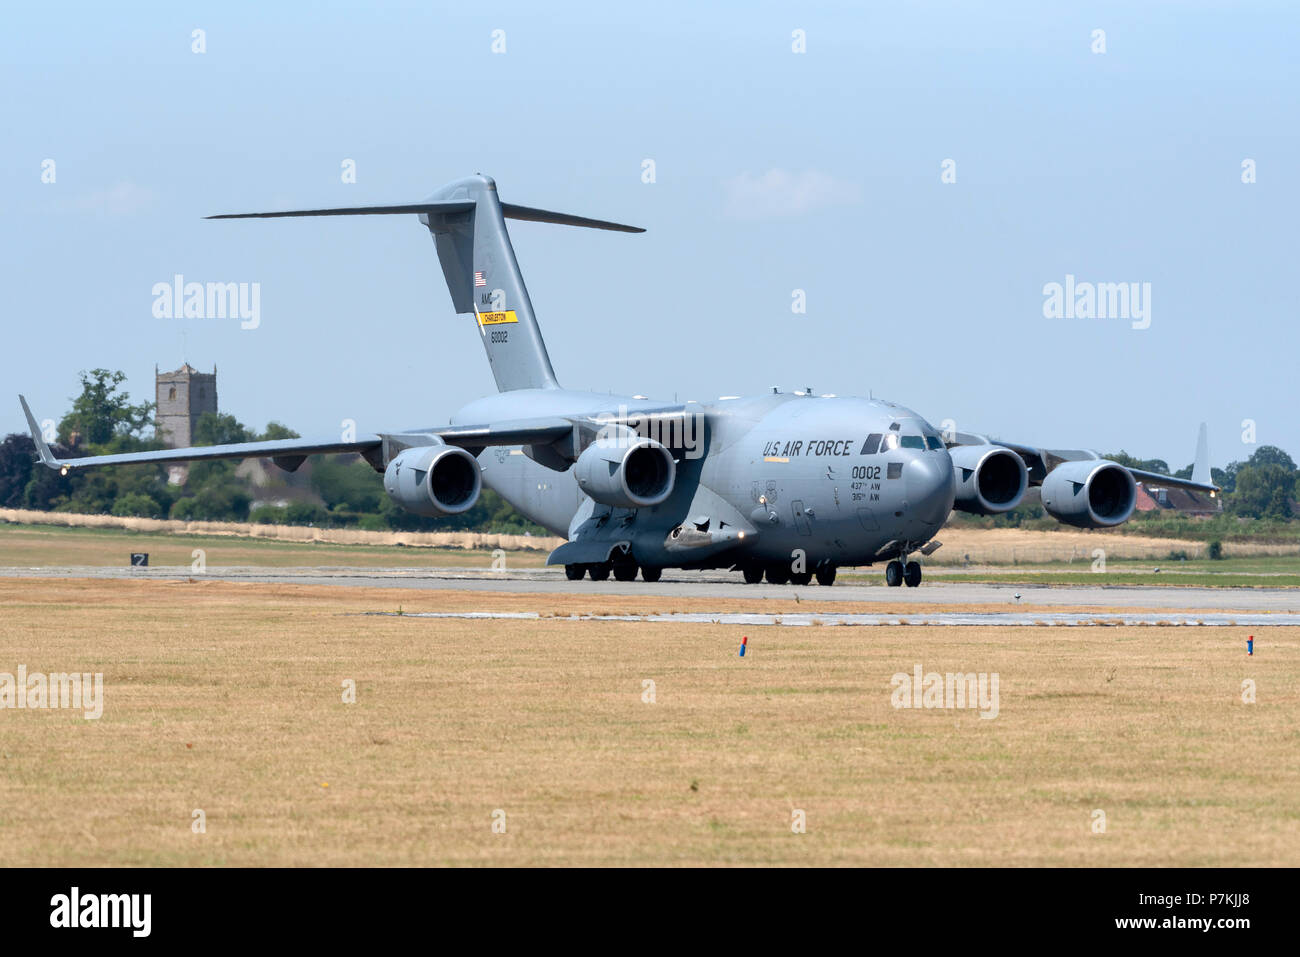 Somerset, UK. 7th July 2018. A USAF C-17A Globemaster strategic transport aircraft taxi-ing along a runway at RNAS Yeovilton, Somerset, England, UK, The jet will form in the static display on Saturday's airshow at the base. Picture: Peter Titmuss/AlamyLive Credit: Peter Titmuss/Alamy Live News Credit: Peter Titmuss/Alamy Live News - Stock Image